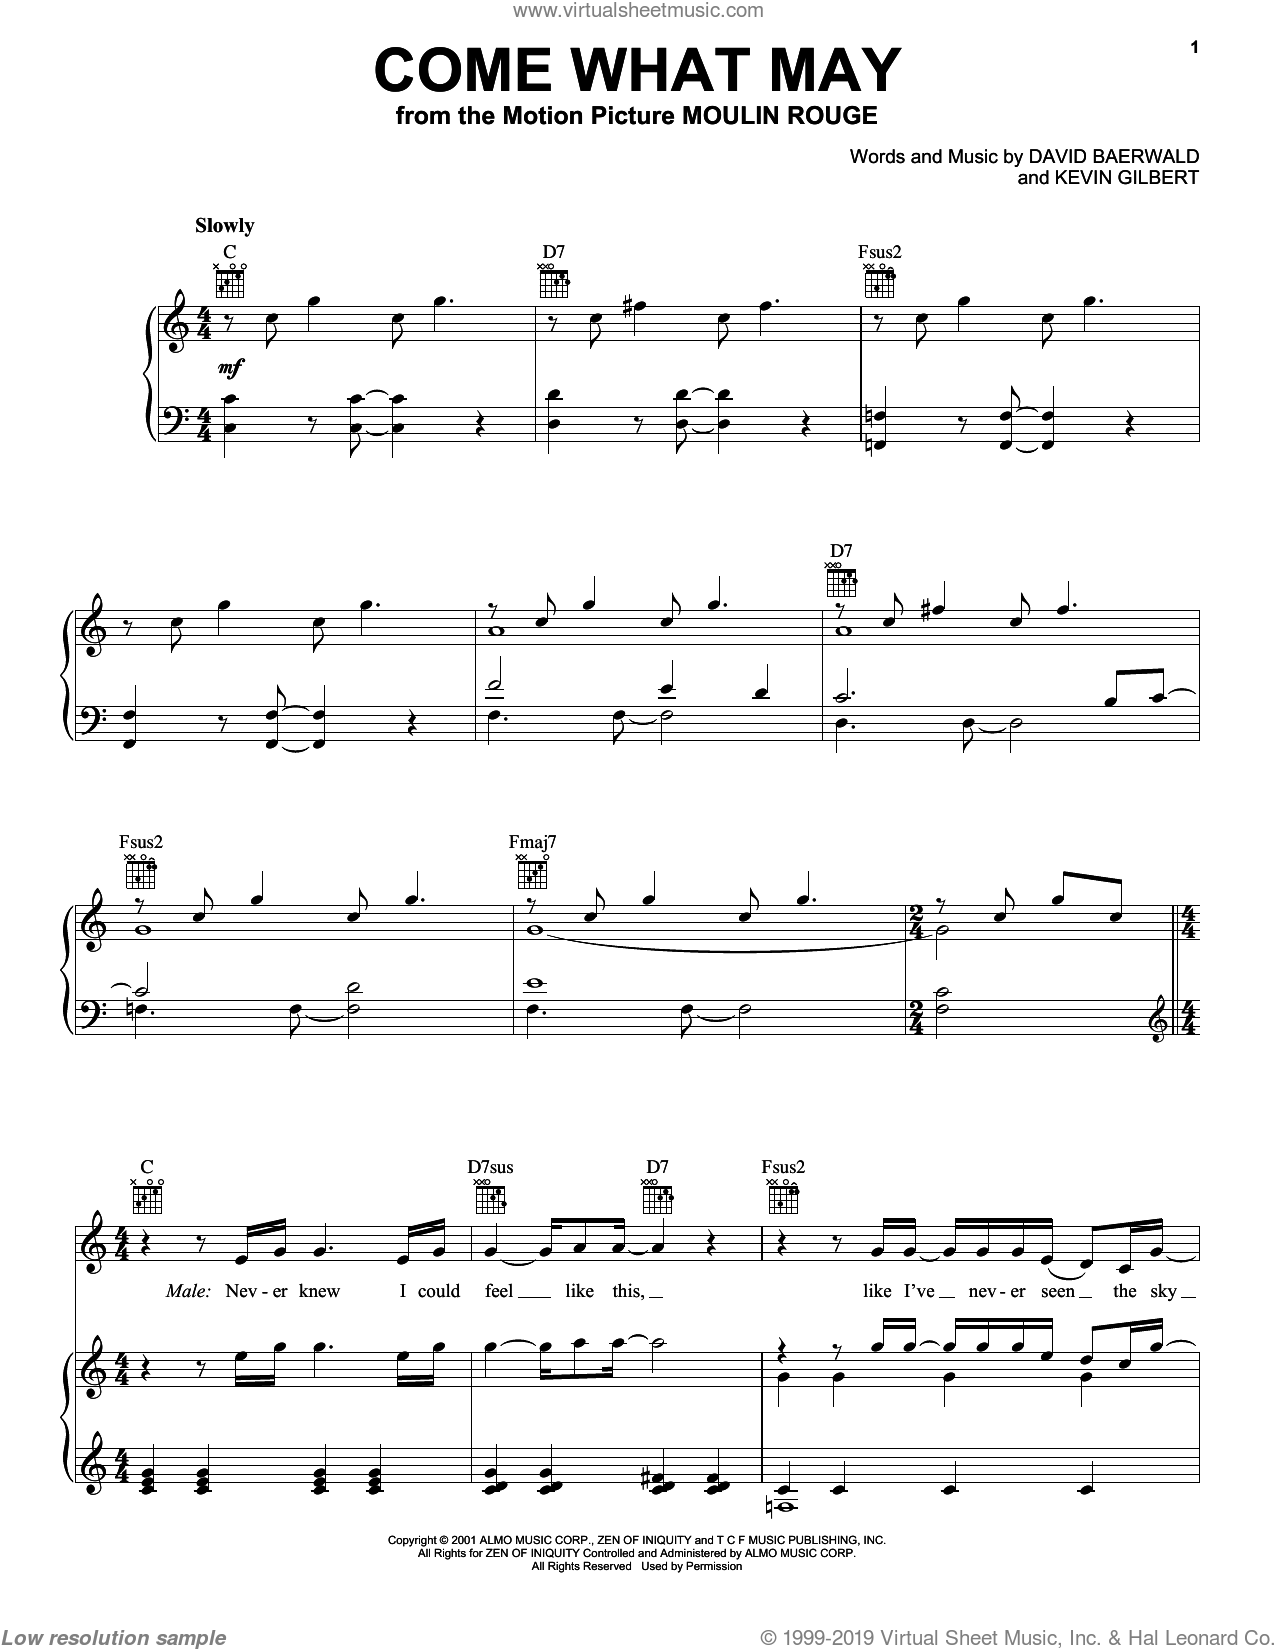 Come What May sheet music for voice, piano or guitar by Nicole Kidman and Ewan McGregor, Ewan McGregor, Moulin Rouge (Movie), Nicole Kidman and David Baerwald, intermediate skill level